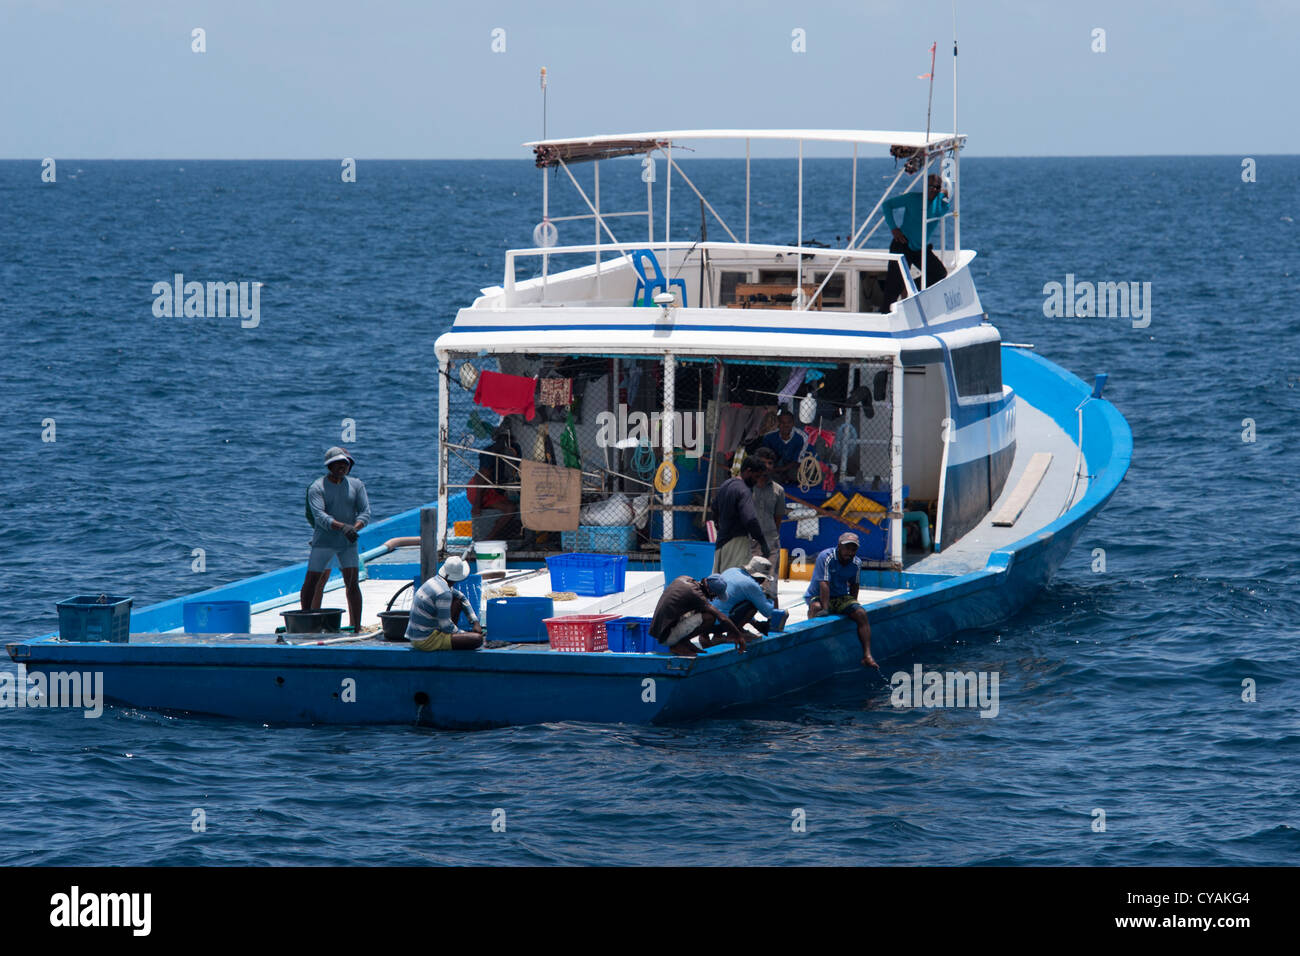 Maldivian tuna fishing boat with pantropical spotted for Tuna fishing boats